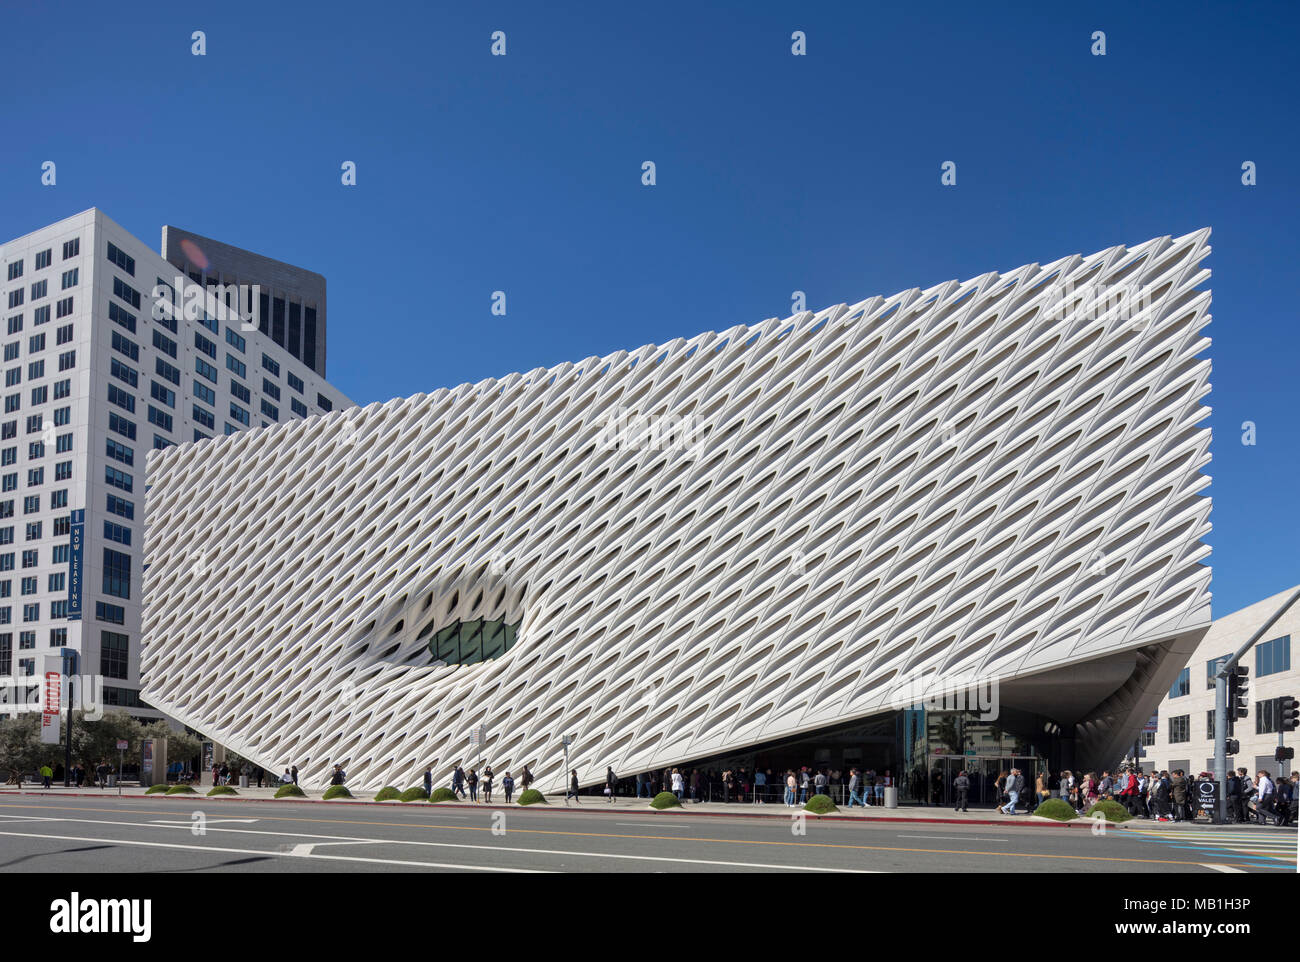 The Broad contemporary art museum on Grand Avenue in Downtown Los Angeles, California, USA - Stock Image